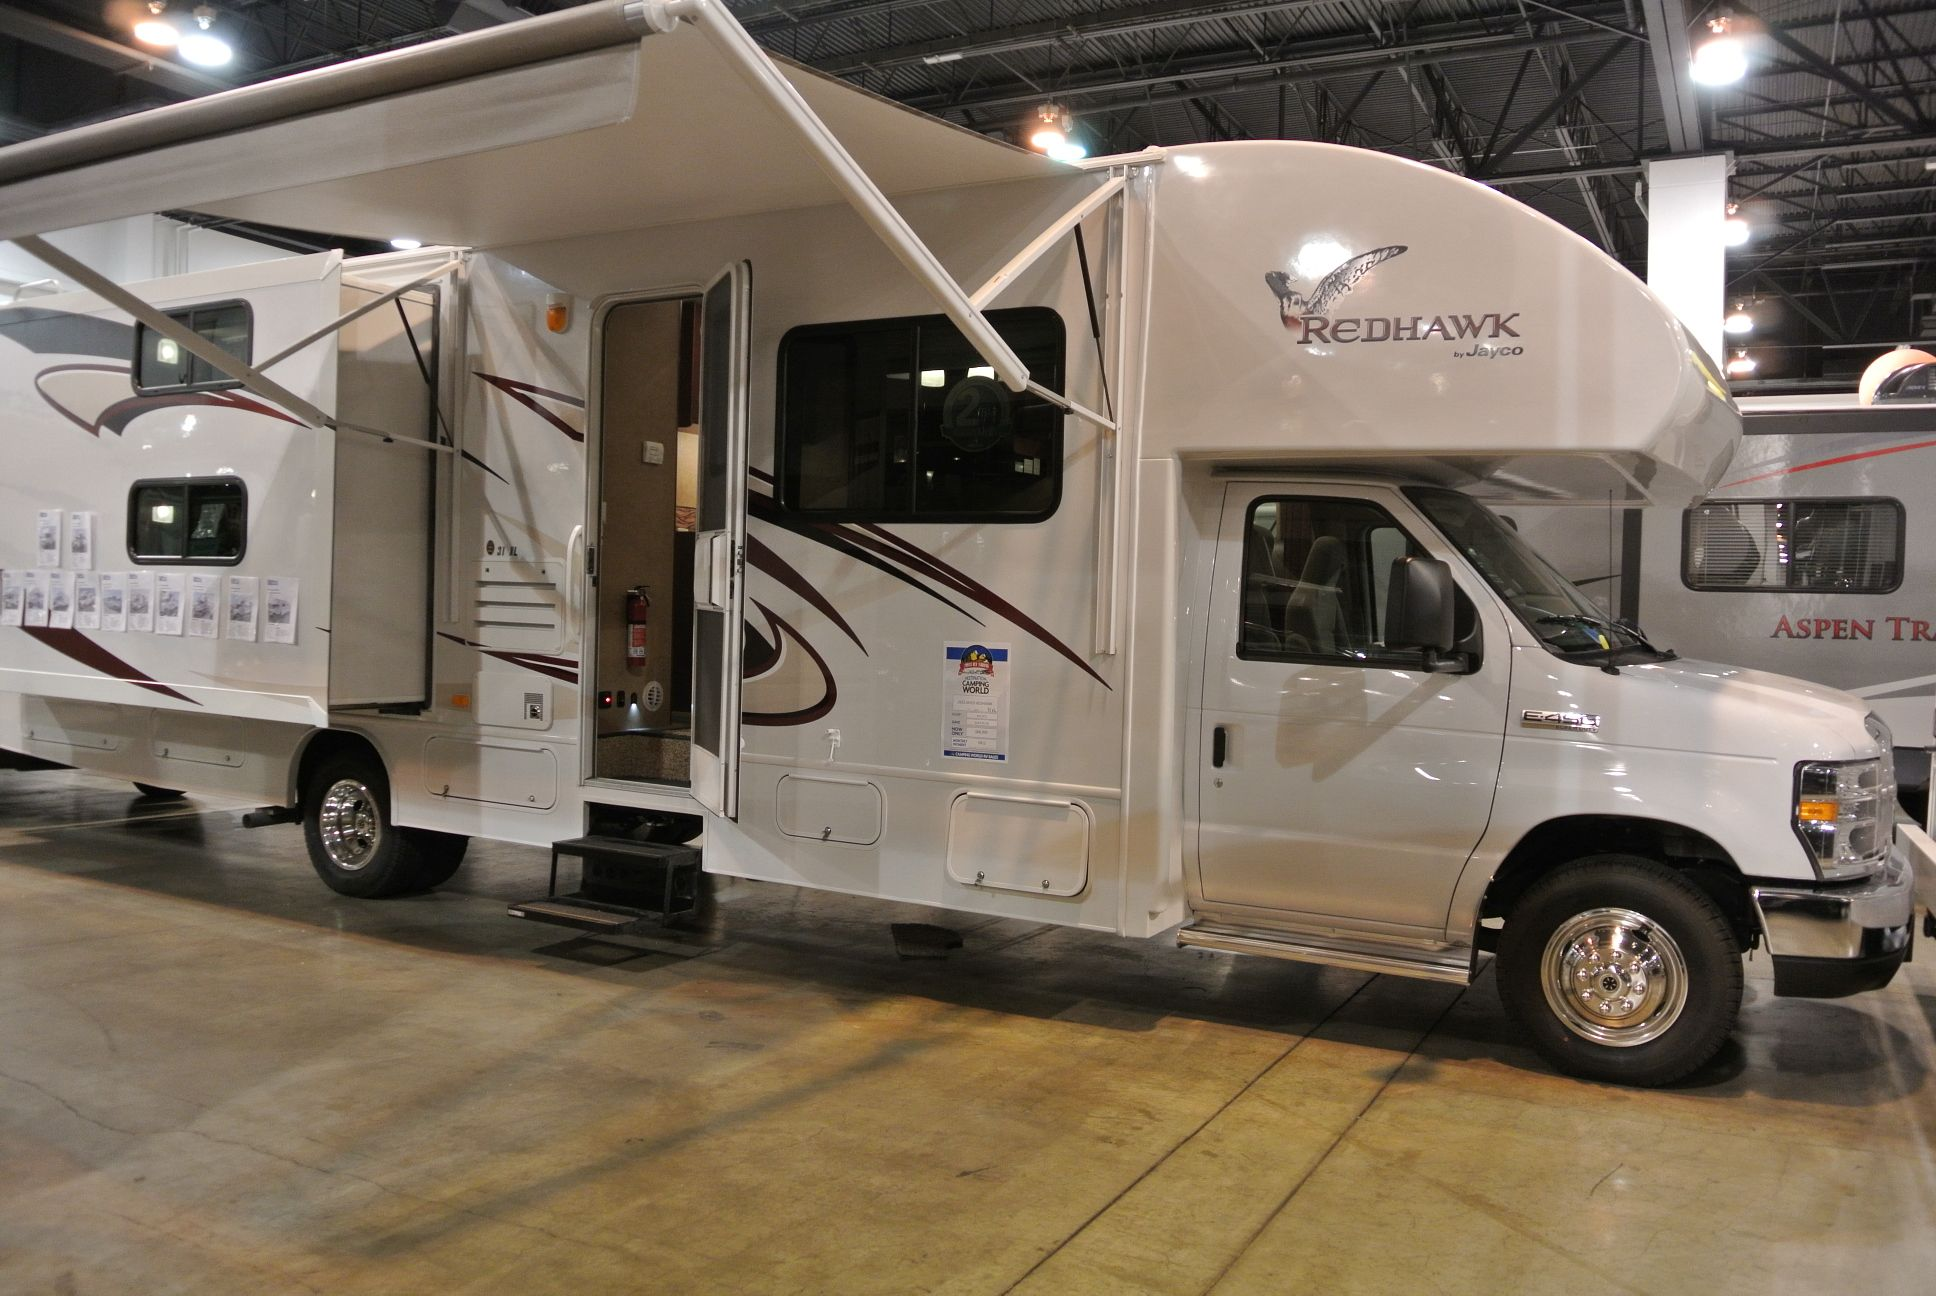 A Class C Rv With The Awning Out At The Show Camping World Rv Sales Camping World Class C Rv